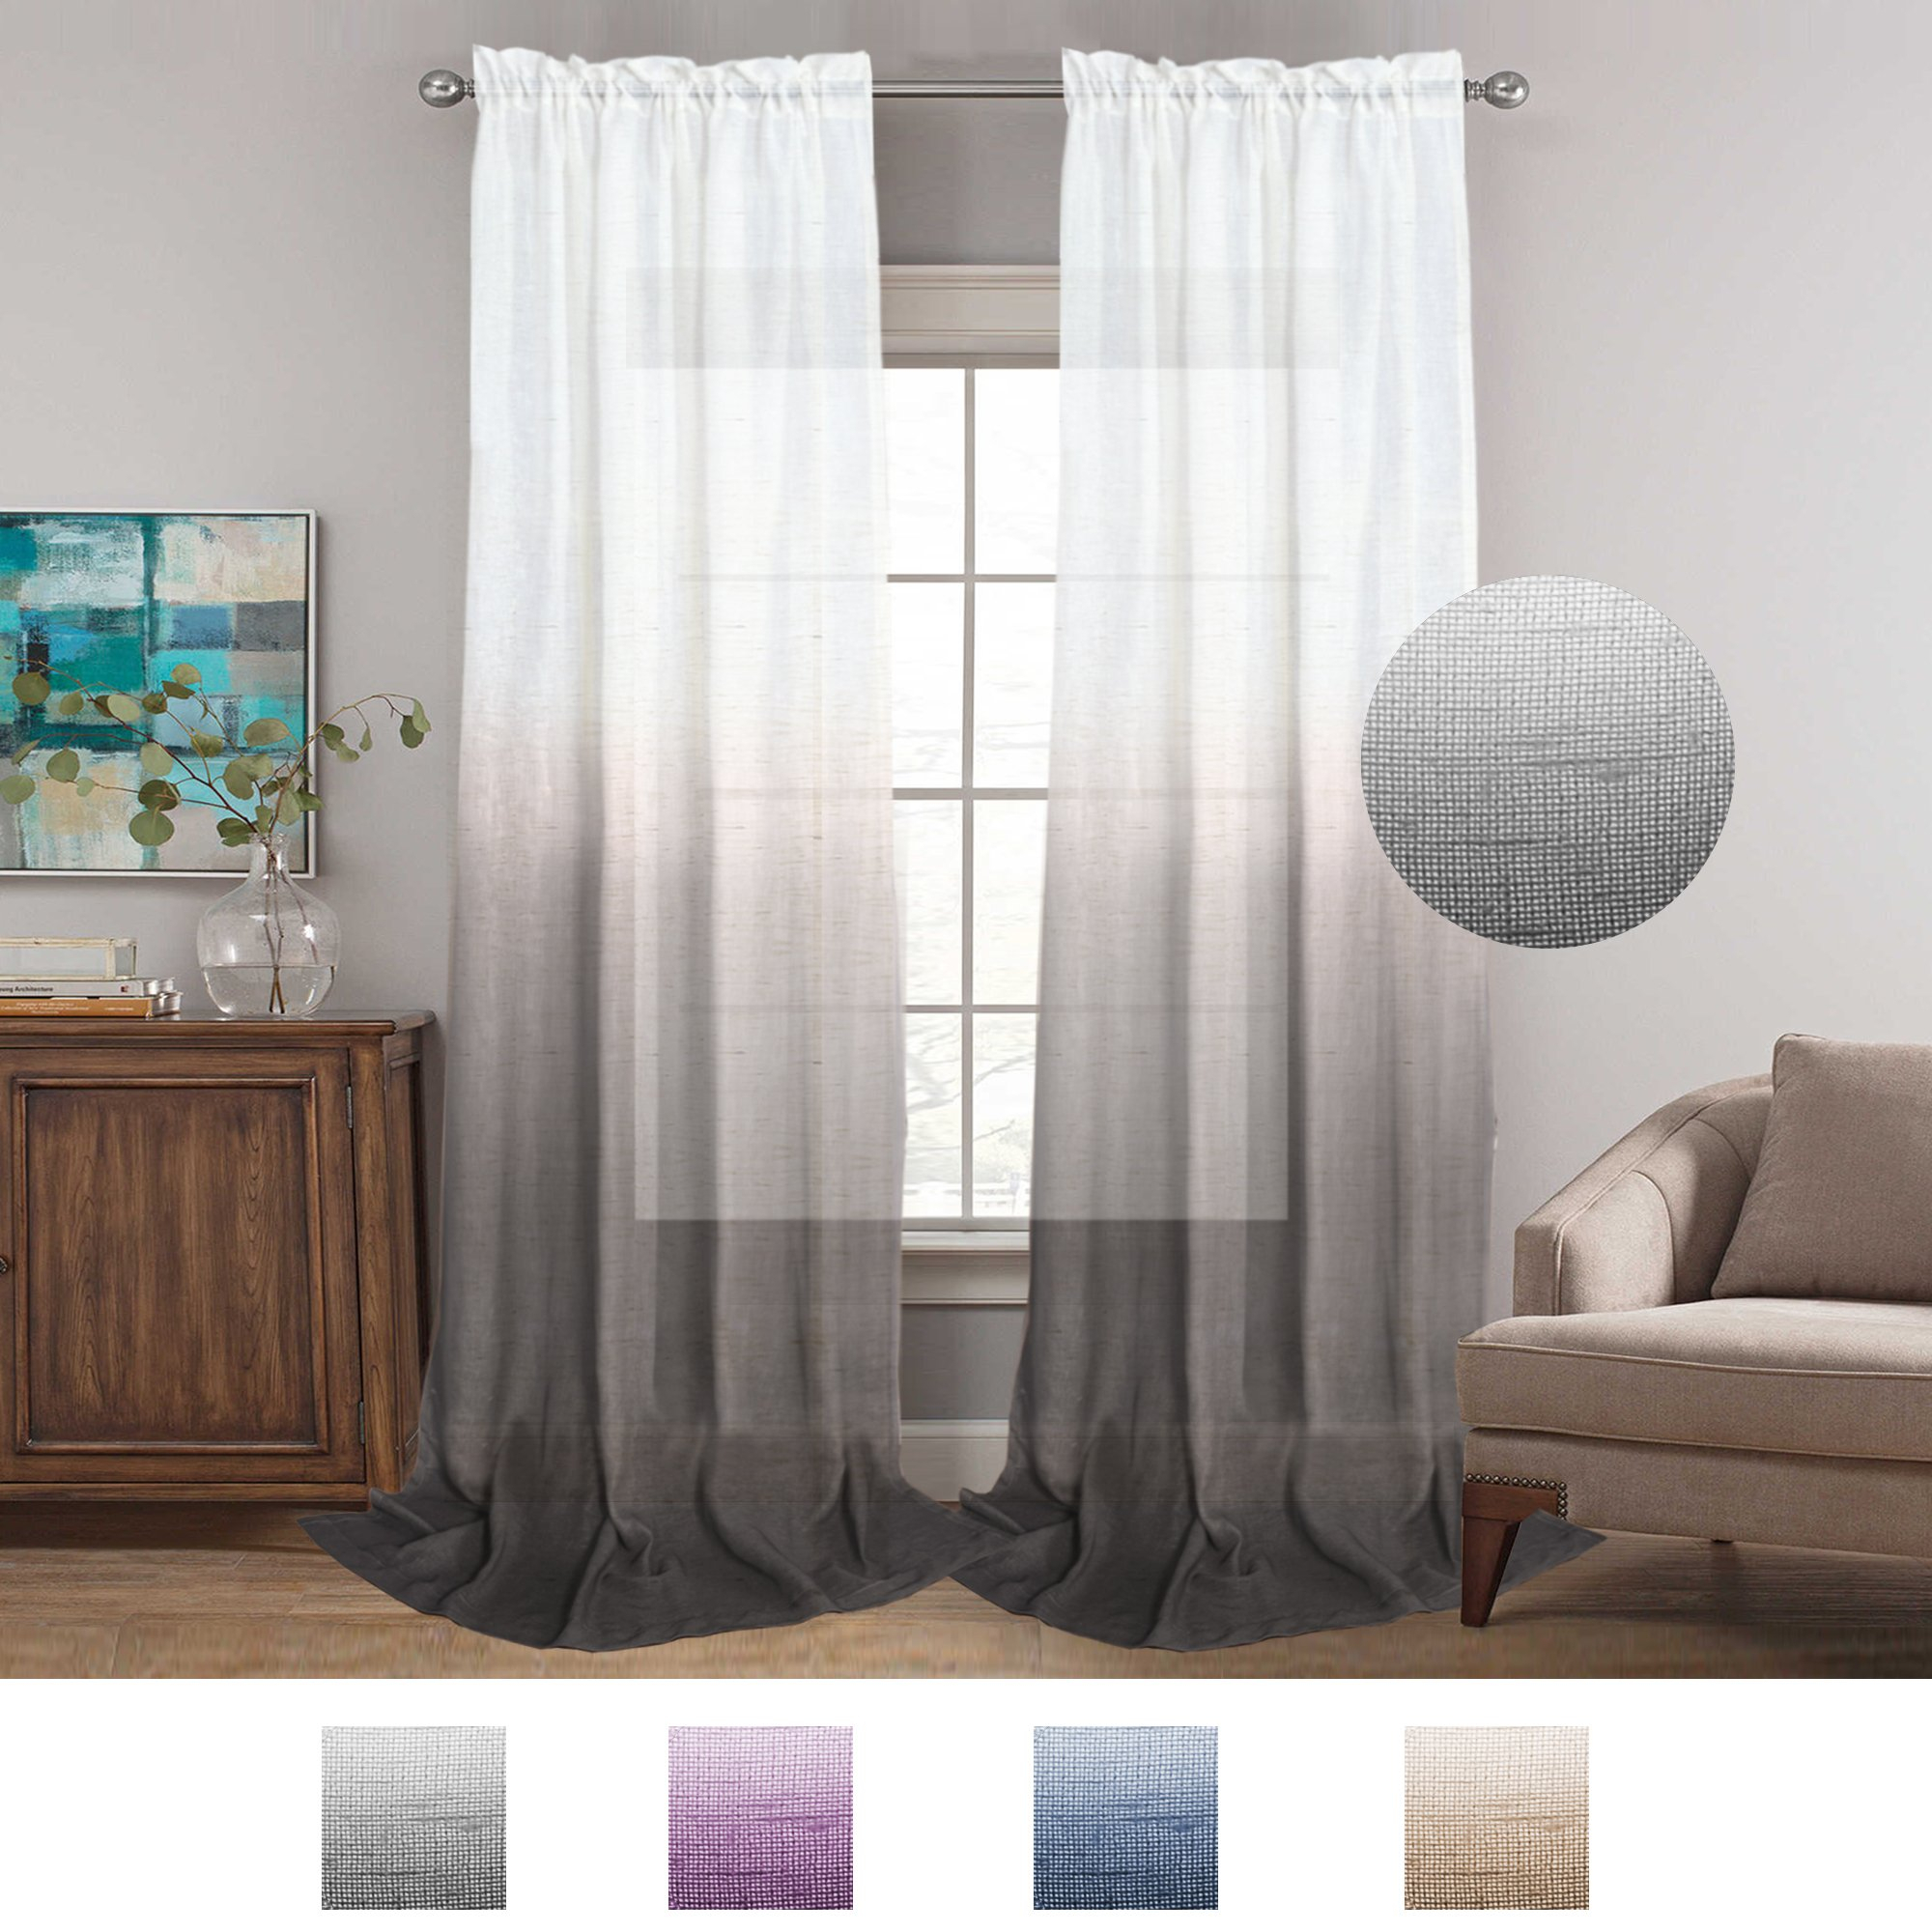 Cheap Linen Sheer Drapes, Find Linen Sheer Drapes Deals On Within Signature French Linen Curtain Panels (View 2 of 30)